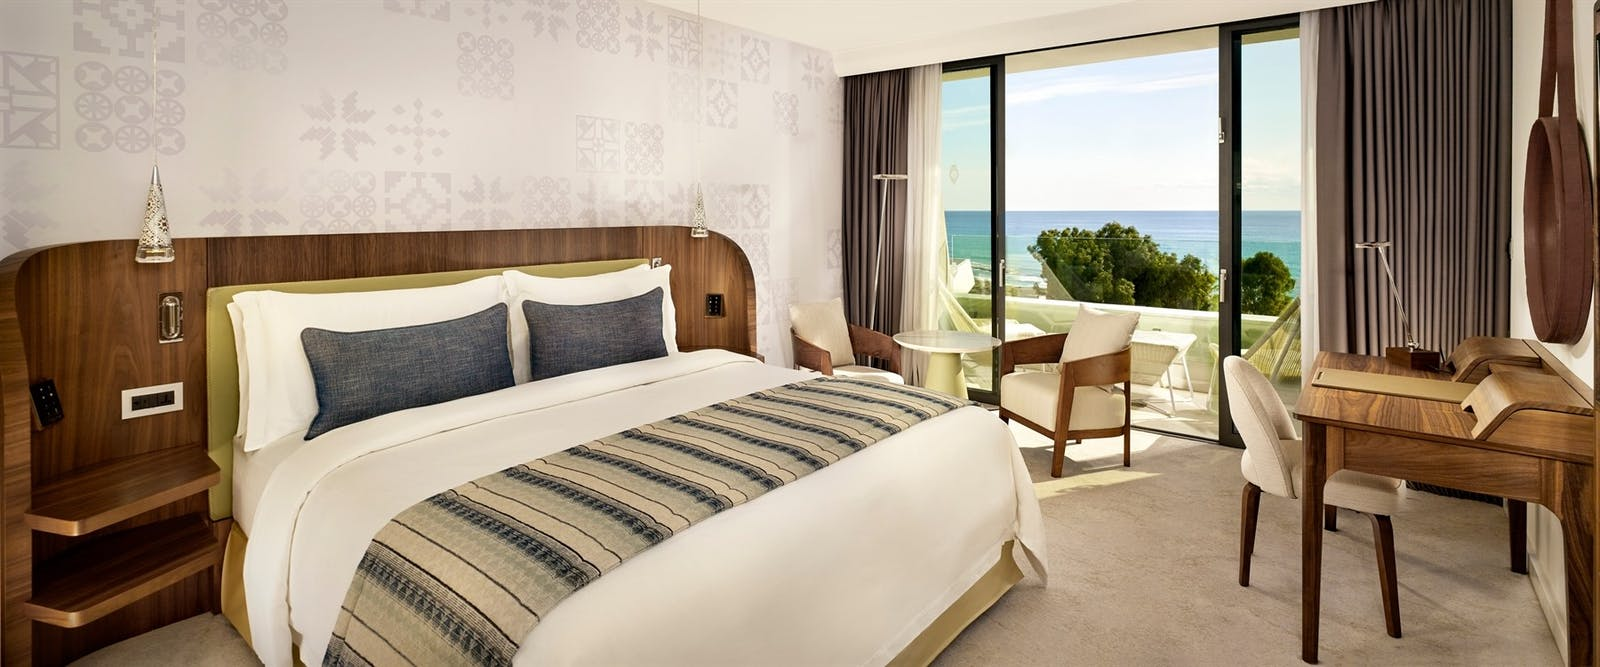 Superior Sea View Room at Parklane, a Luxury Collection Resort & Spa, Limassol, Cyprus